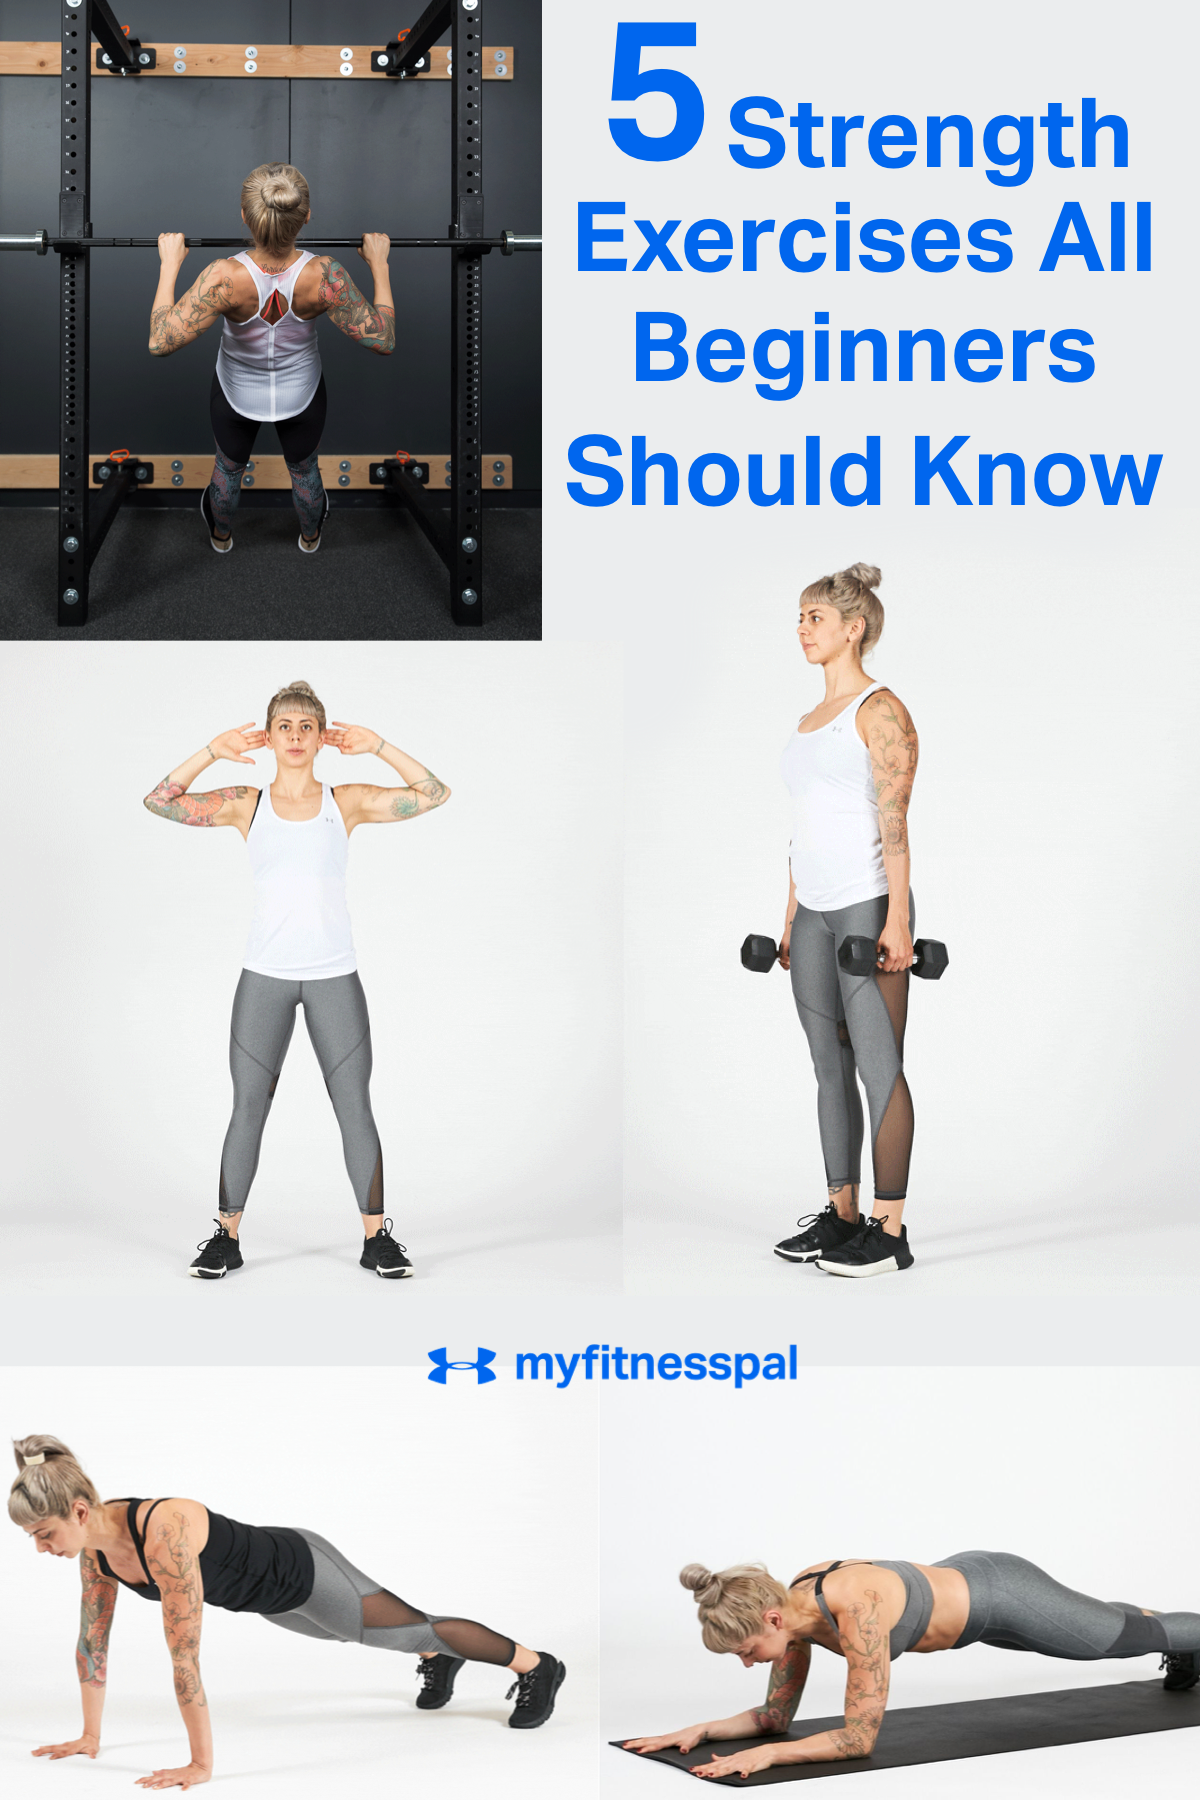 5 Strength Exercises All Beginners Should Know | Fitness | MyFitnessPal Strength training for begin